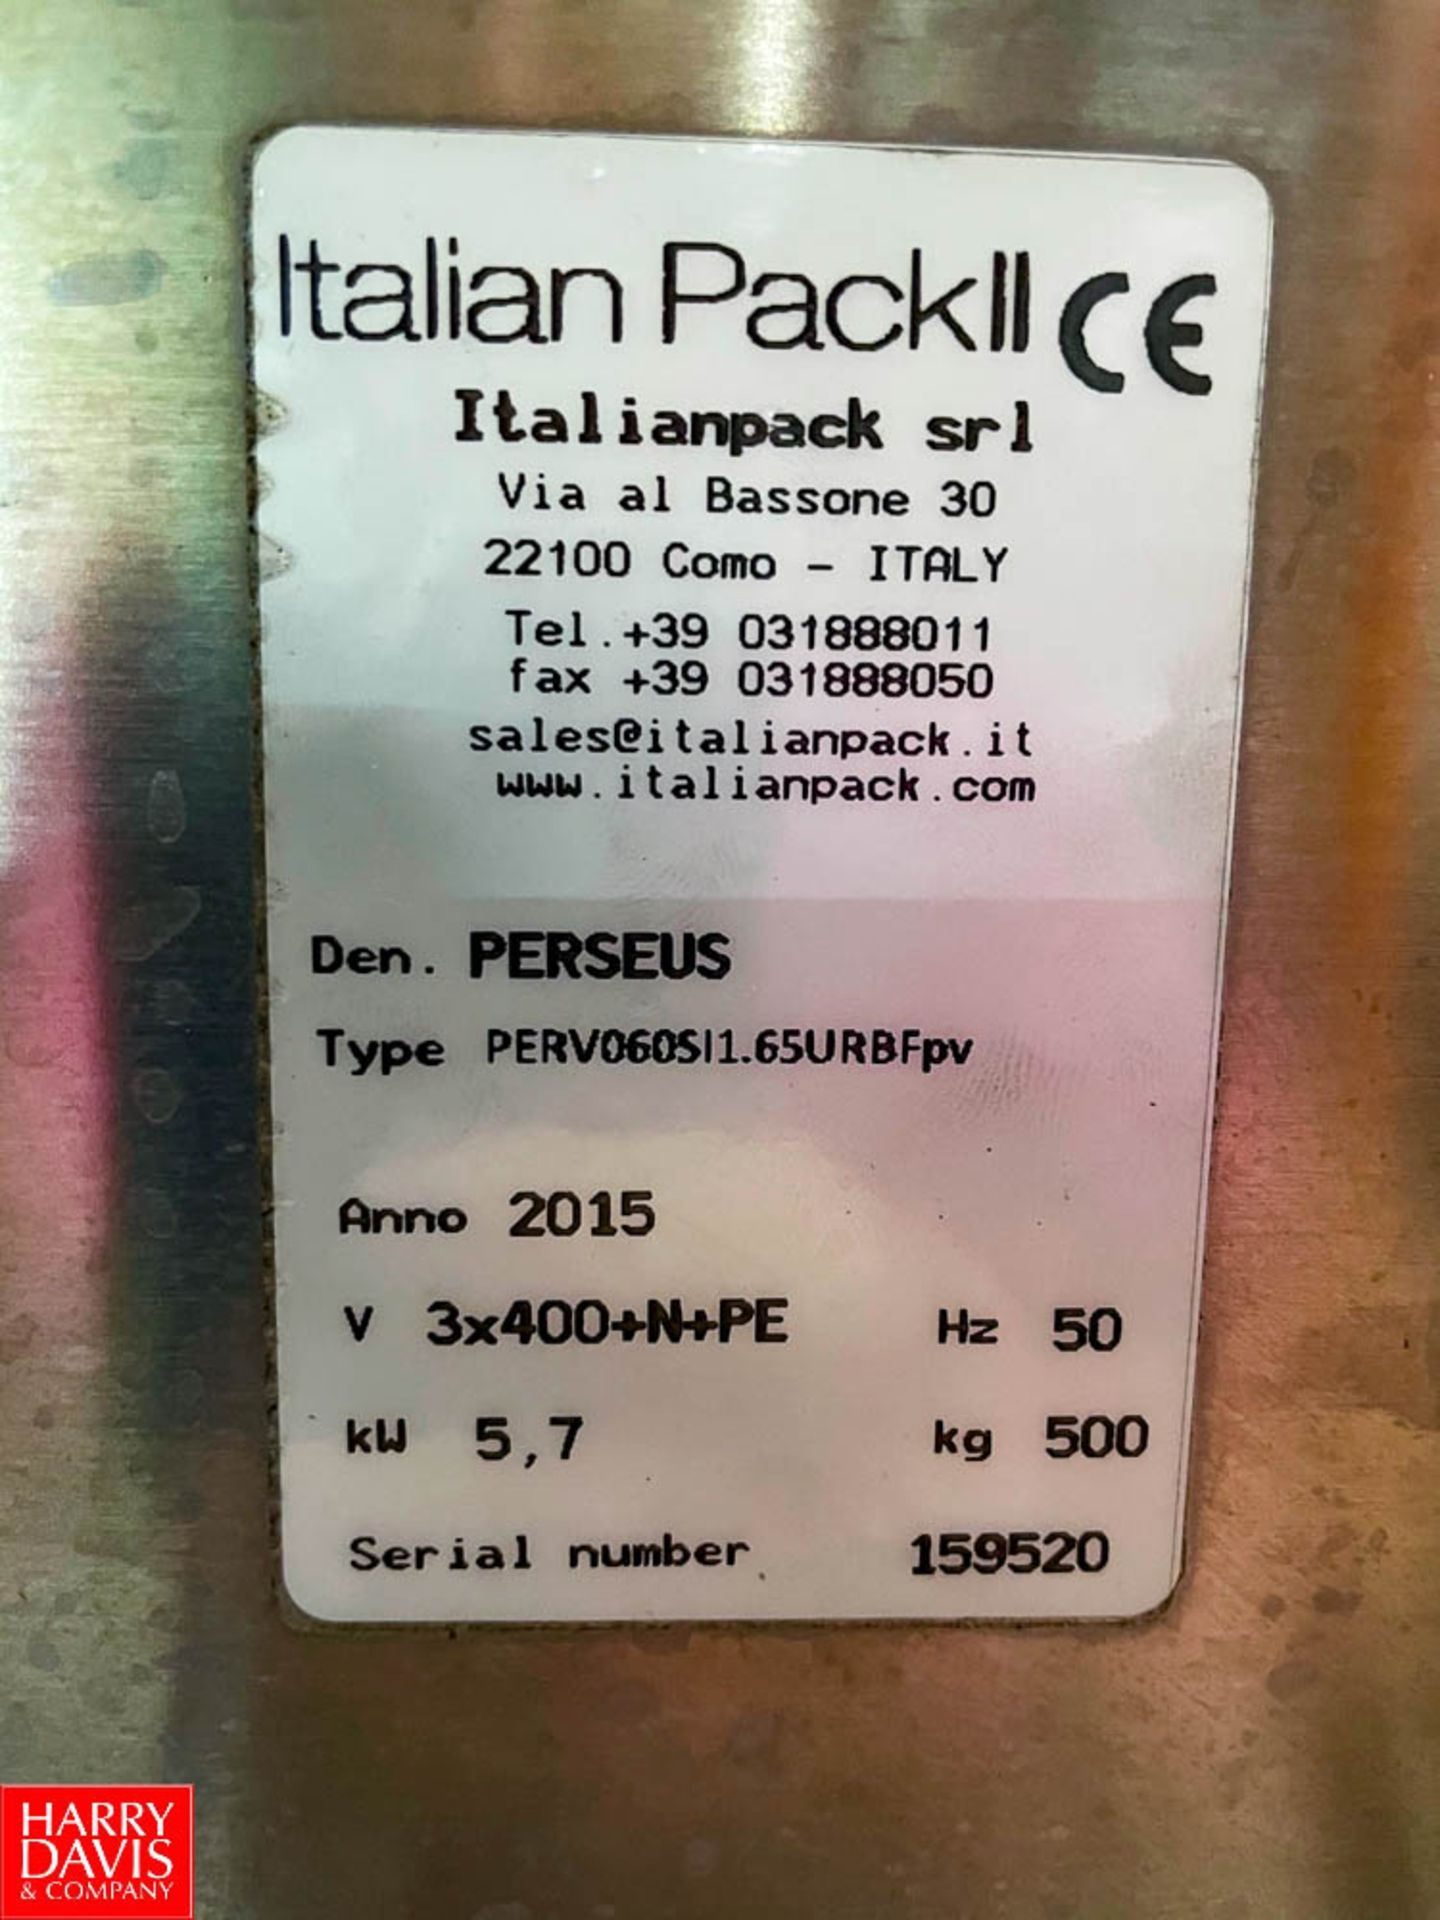 2015 Italian Pack Fully Automated Tray Packer Model: Perseus SN:159520 Type Perv060SI1.65URBFpv - Image 3 of 5